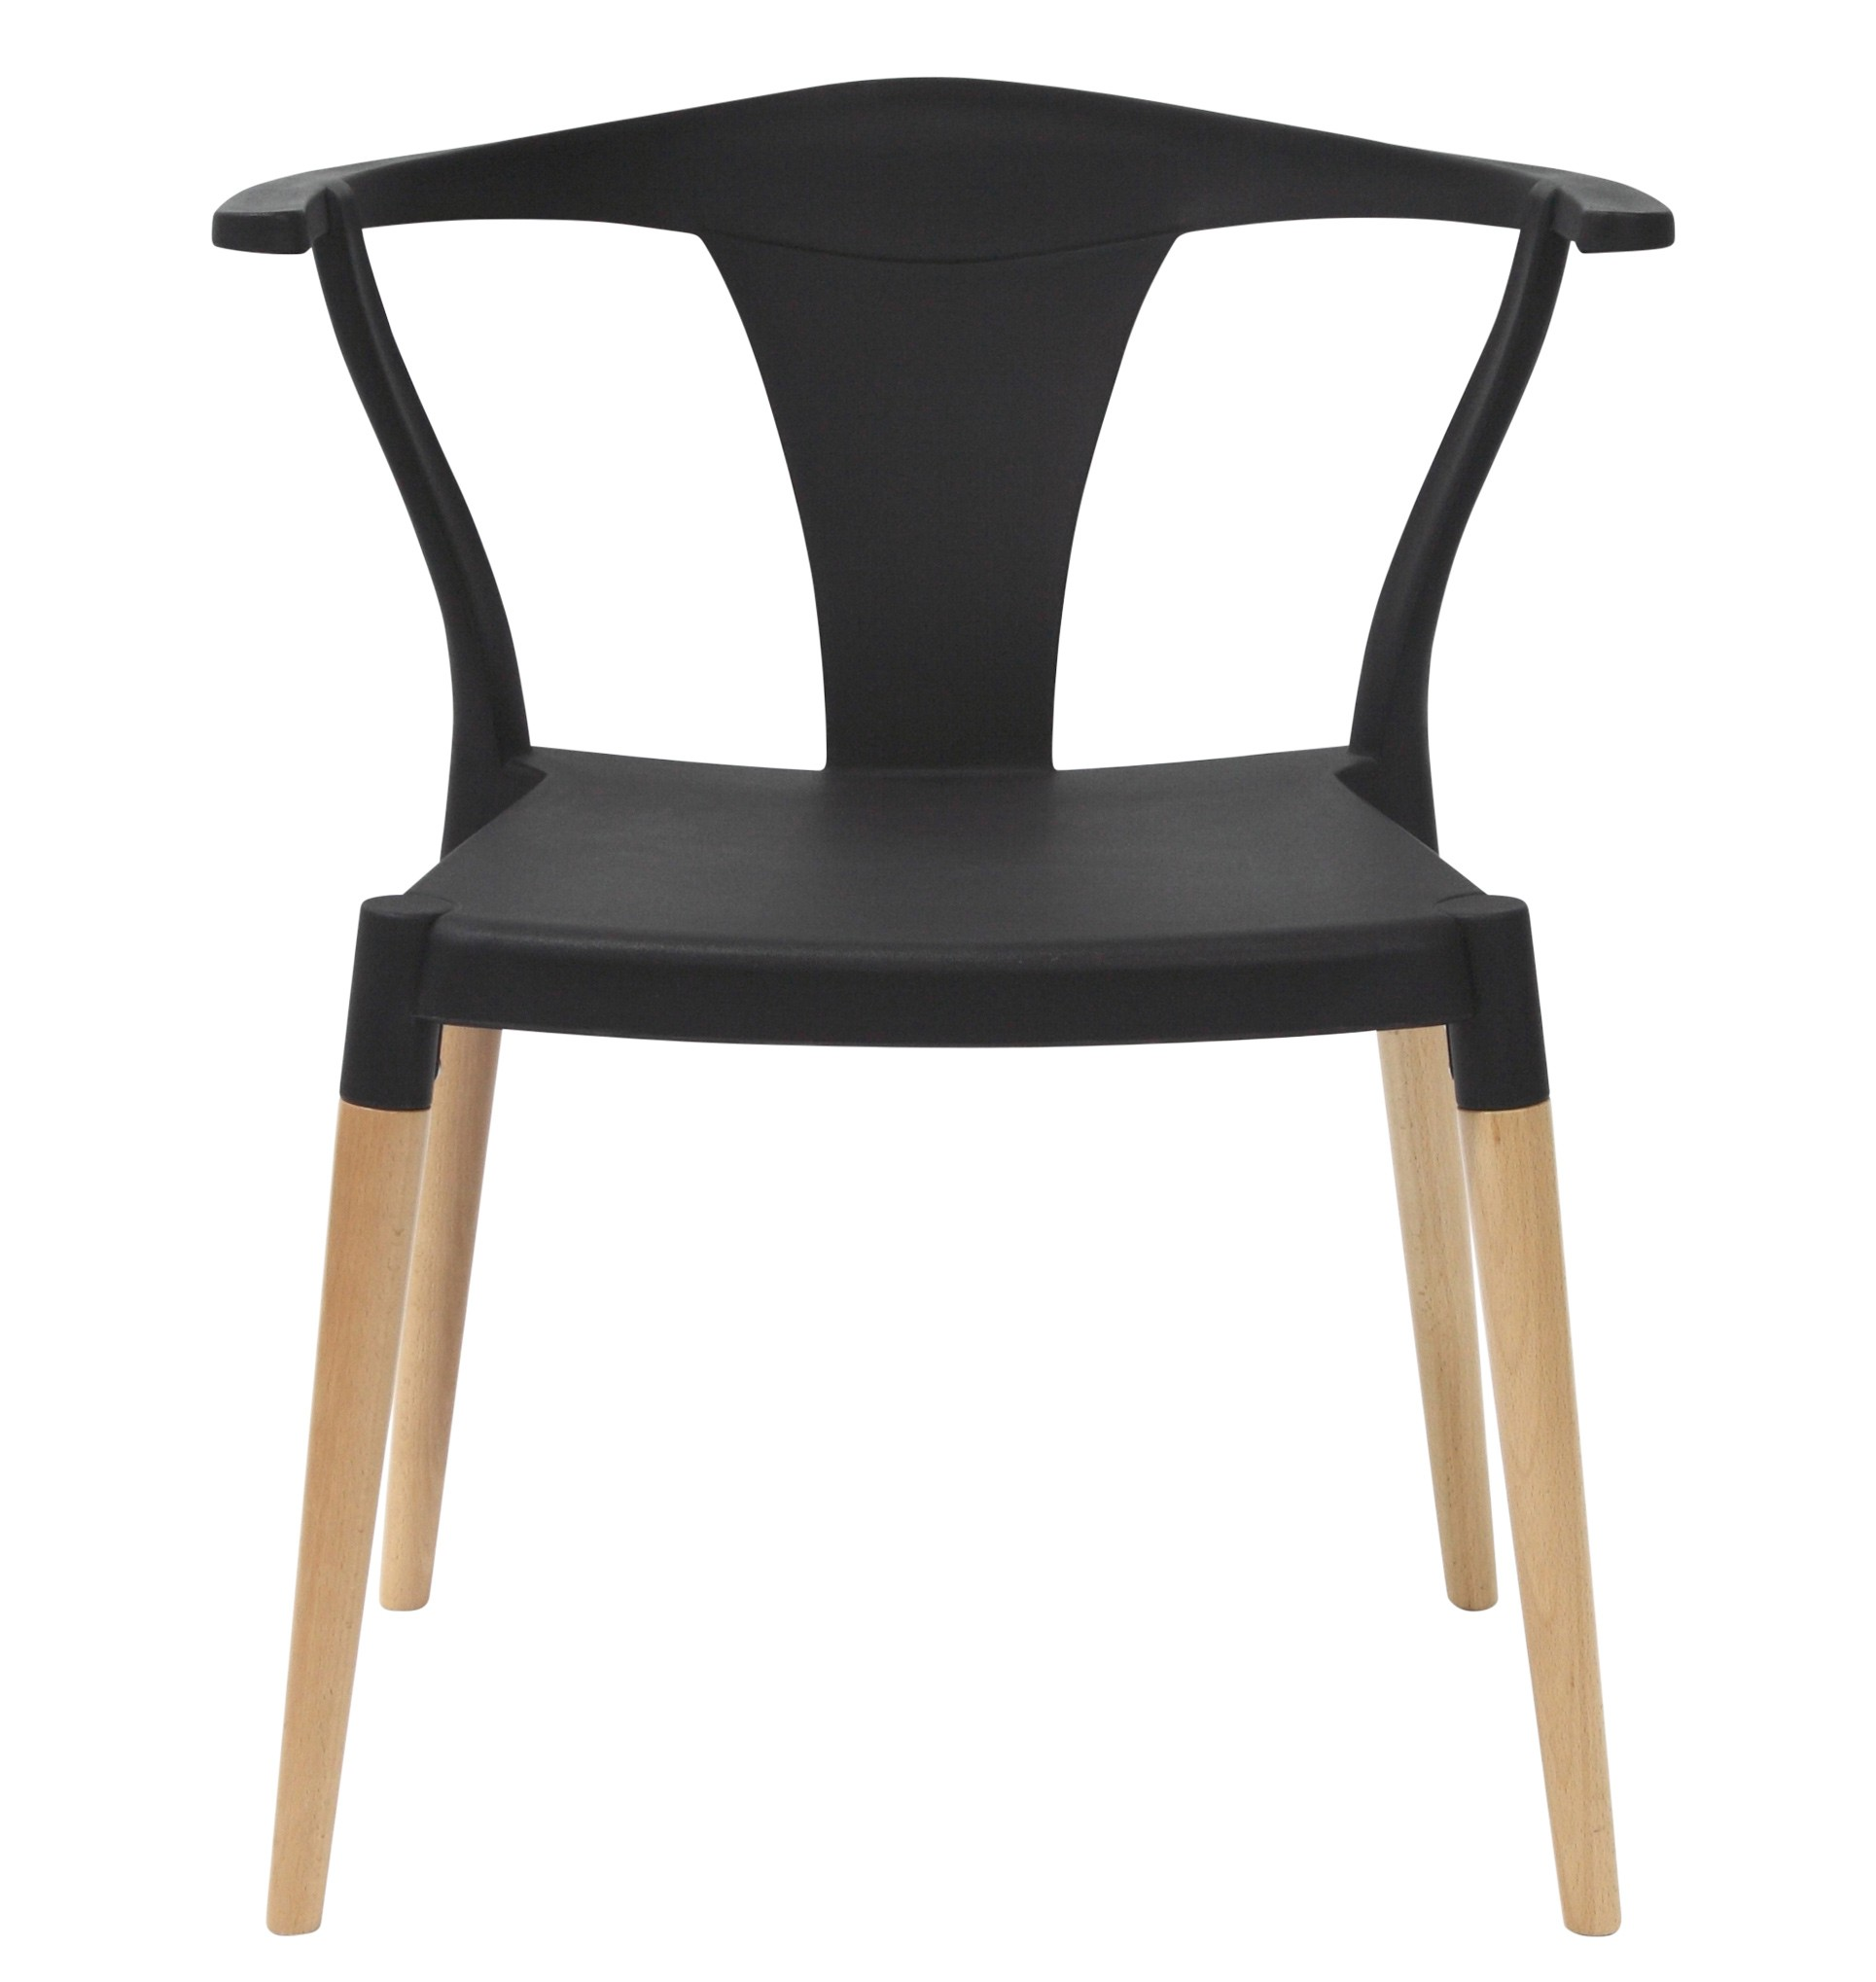 Dining Arm Chairs Black Design: Icon Series Black Modern Accent Dining Arm Chair Beech